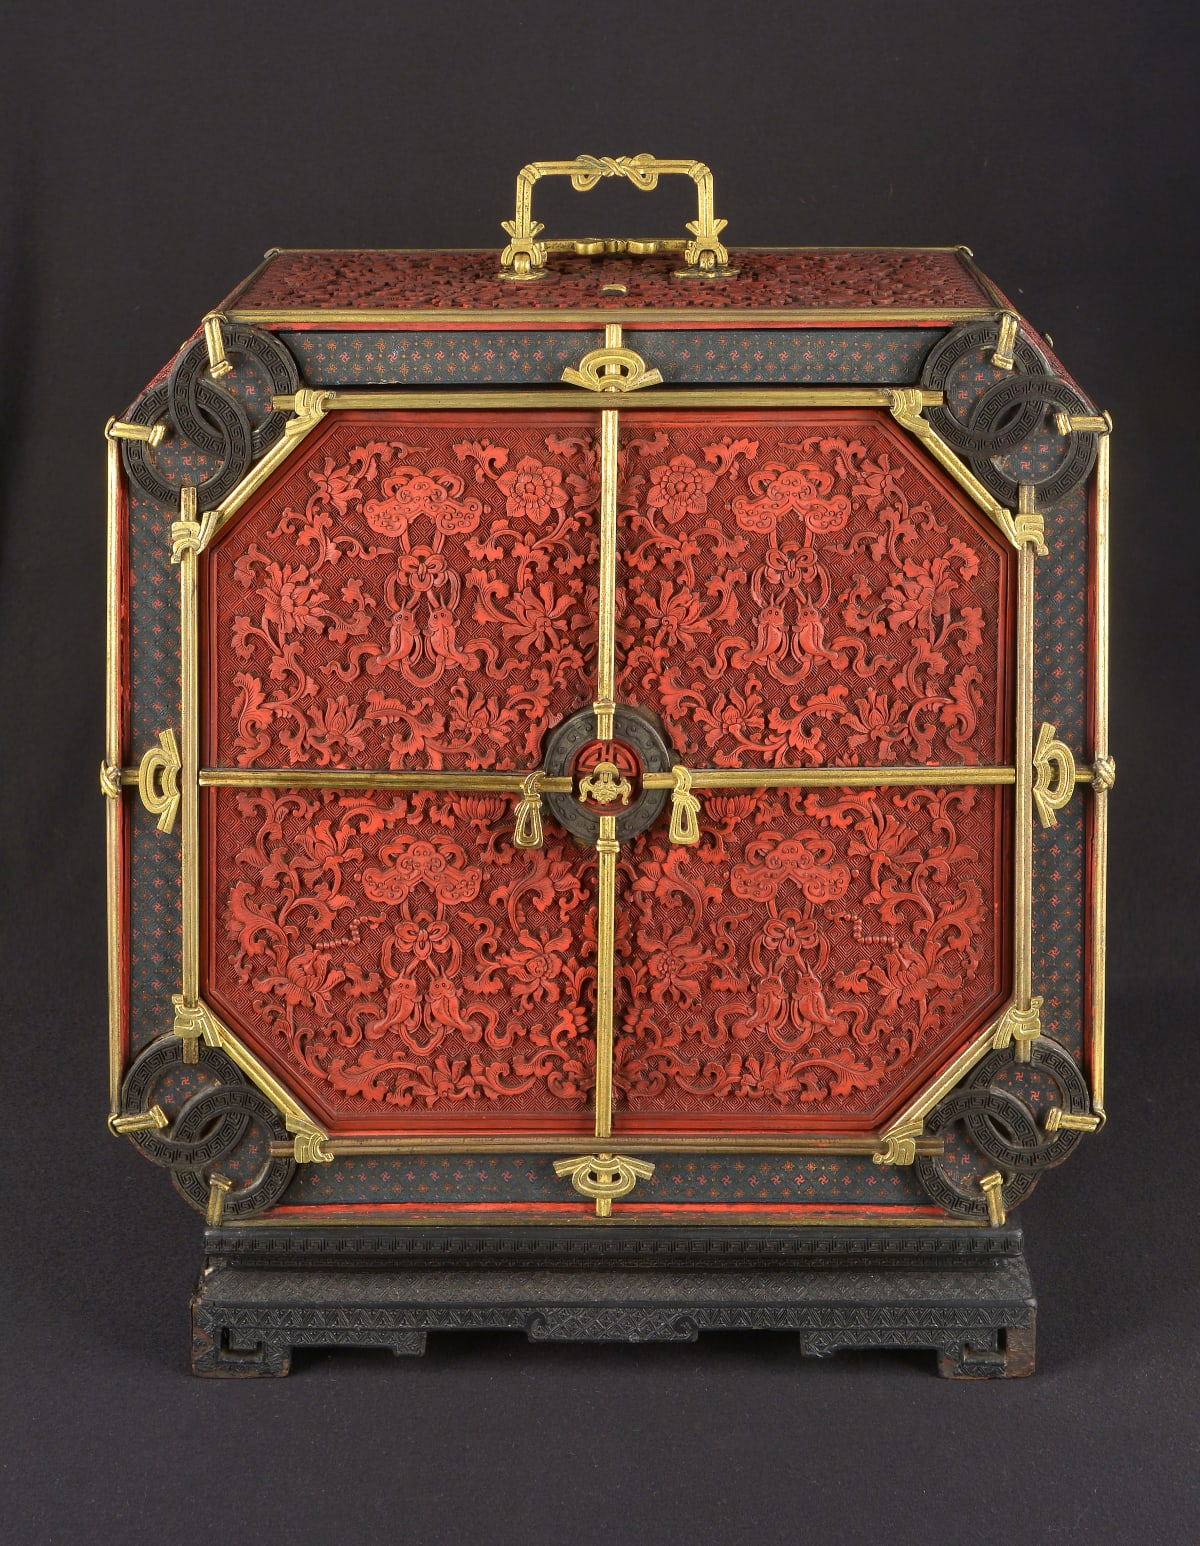 Unknown Artist, Chinese Imperial Red Lacquer Cabinet, Qianlong Period (1736-1759)